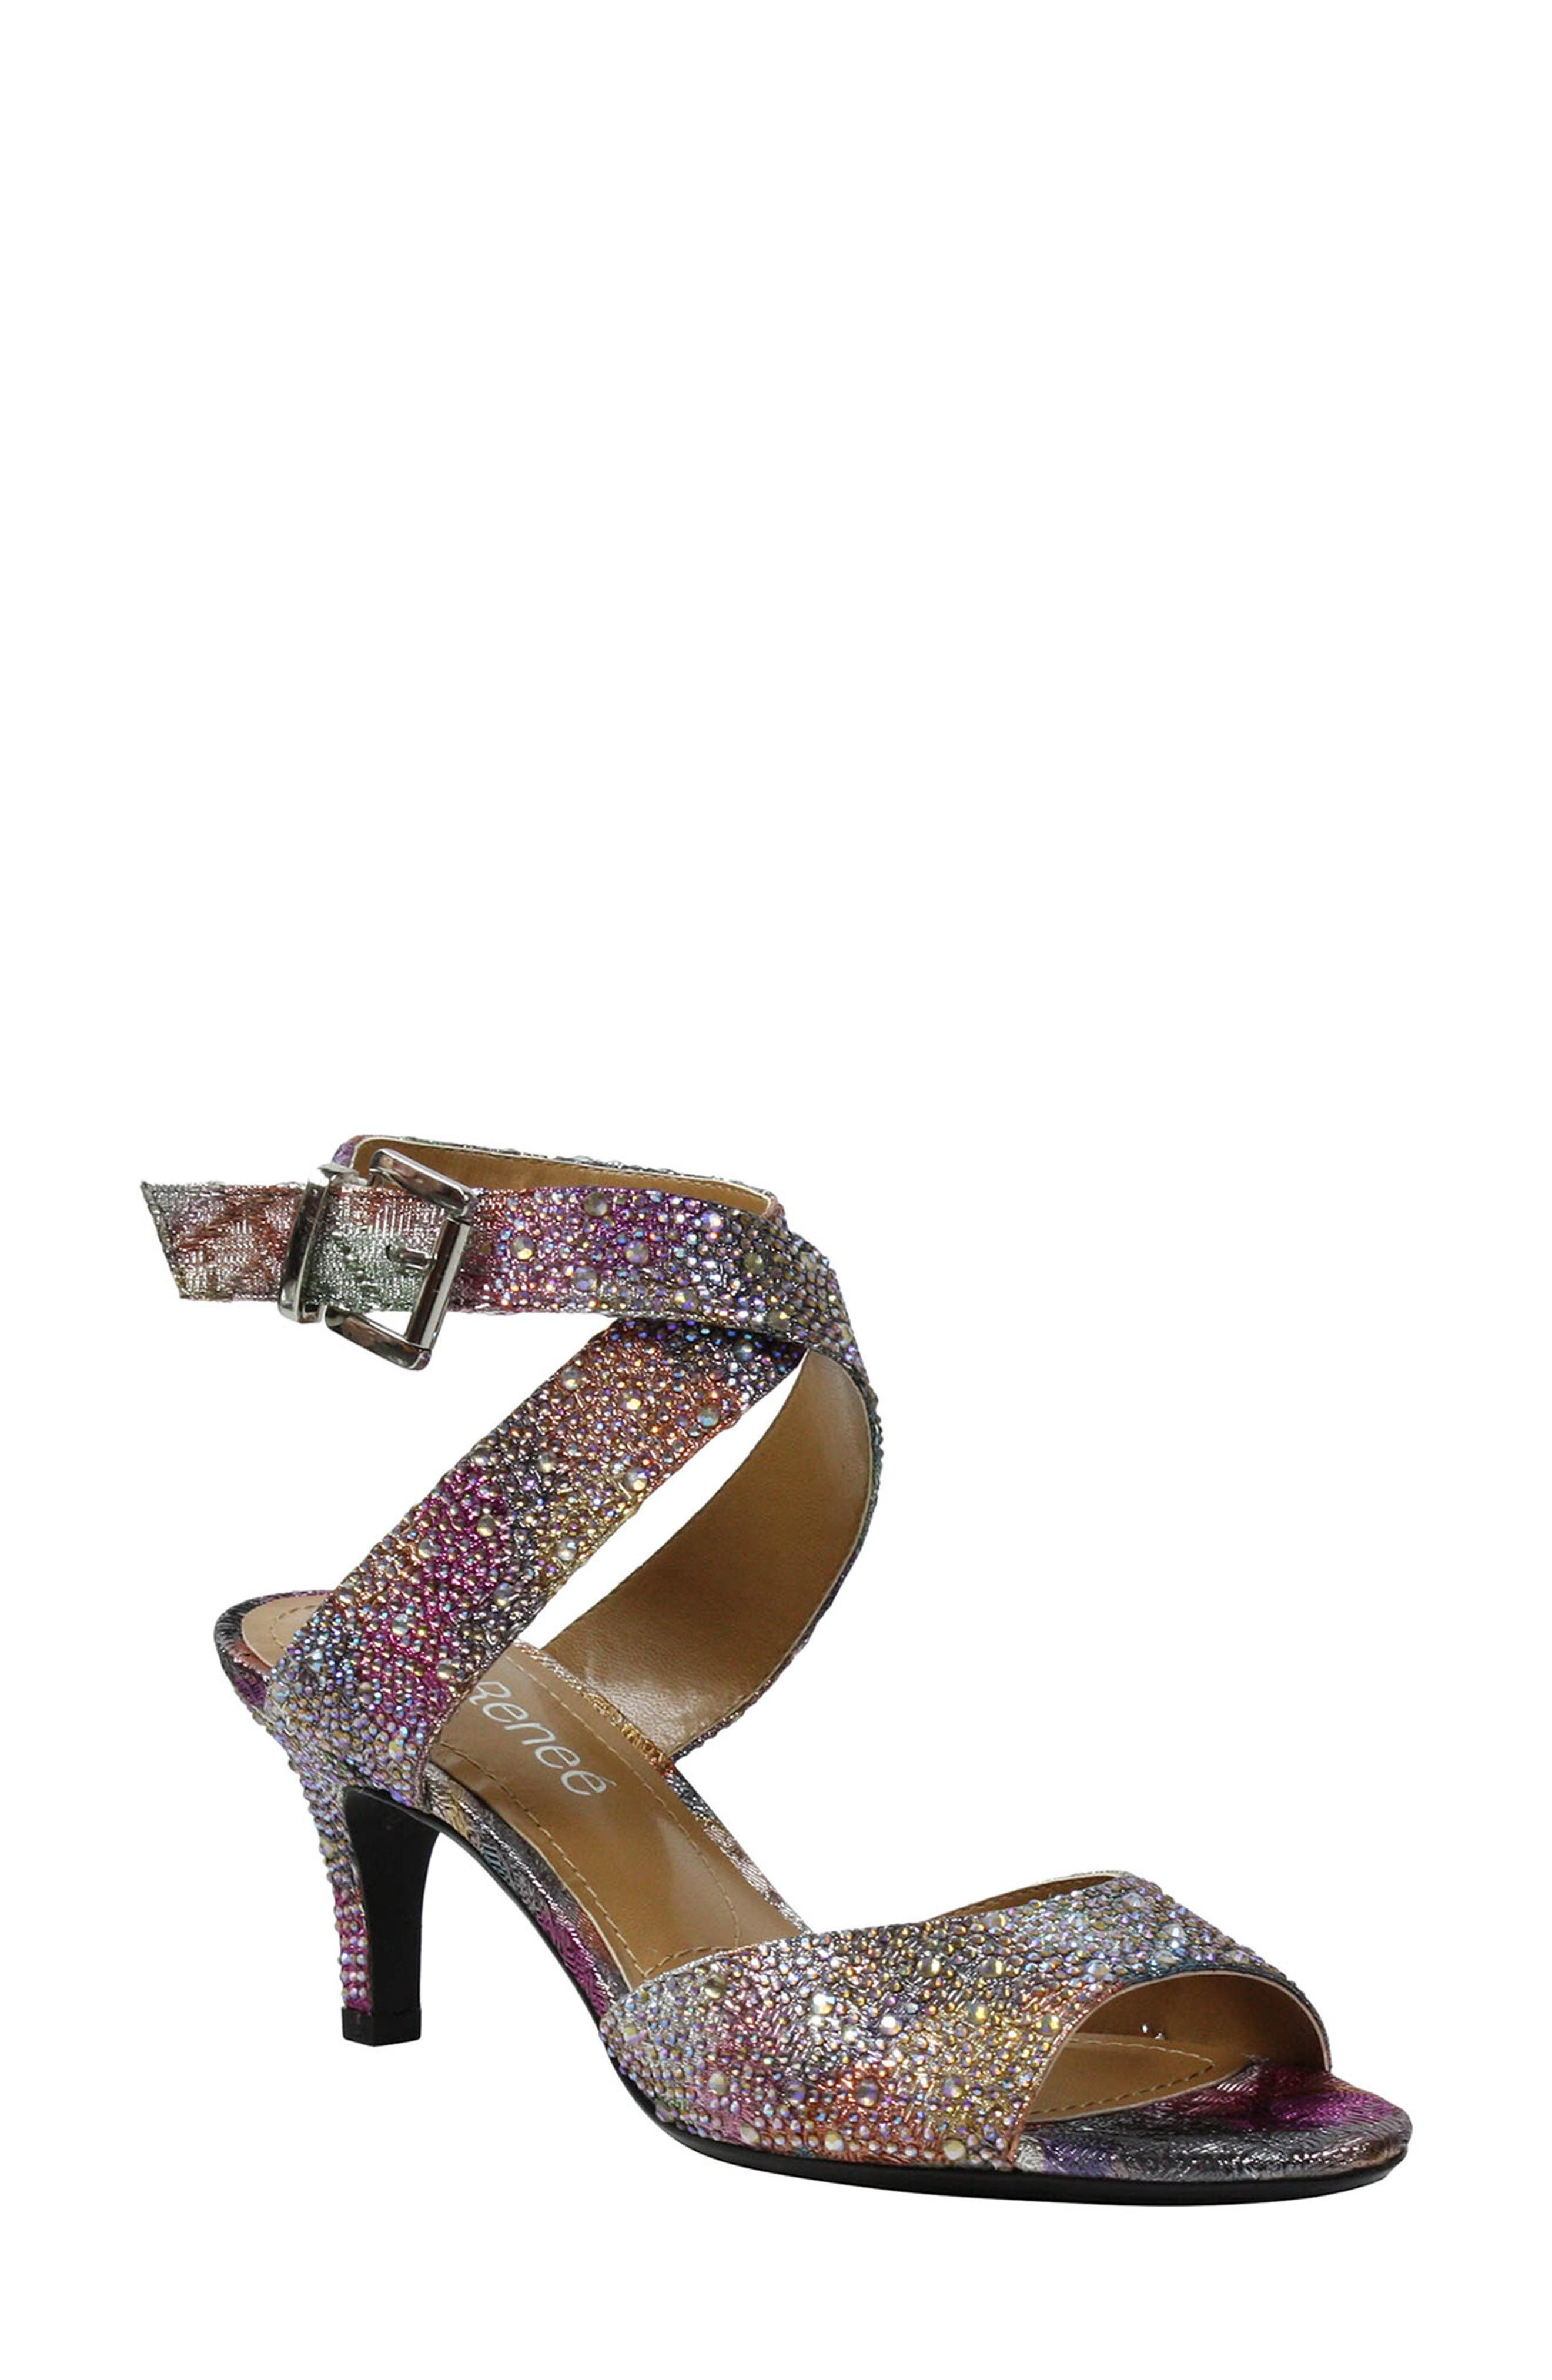 'Soncino' Ankle Strap Sandal,                         Main,                         color, Silver/ Pastel Fabric